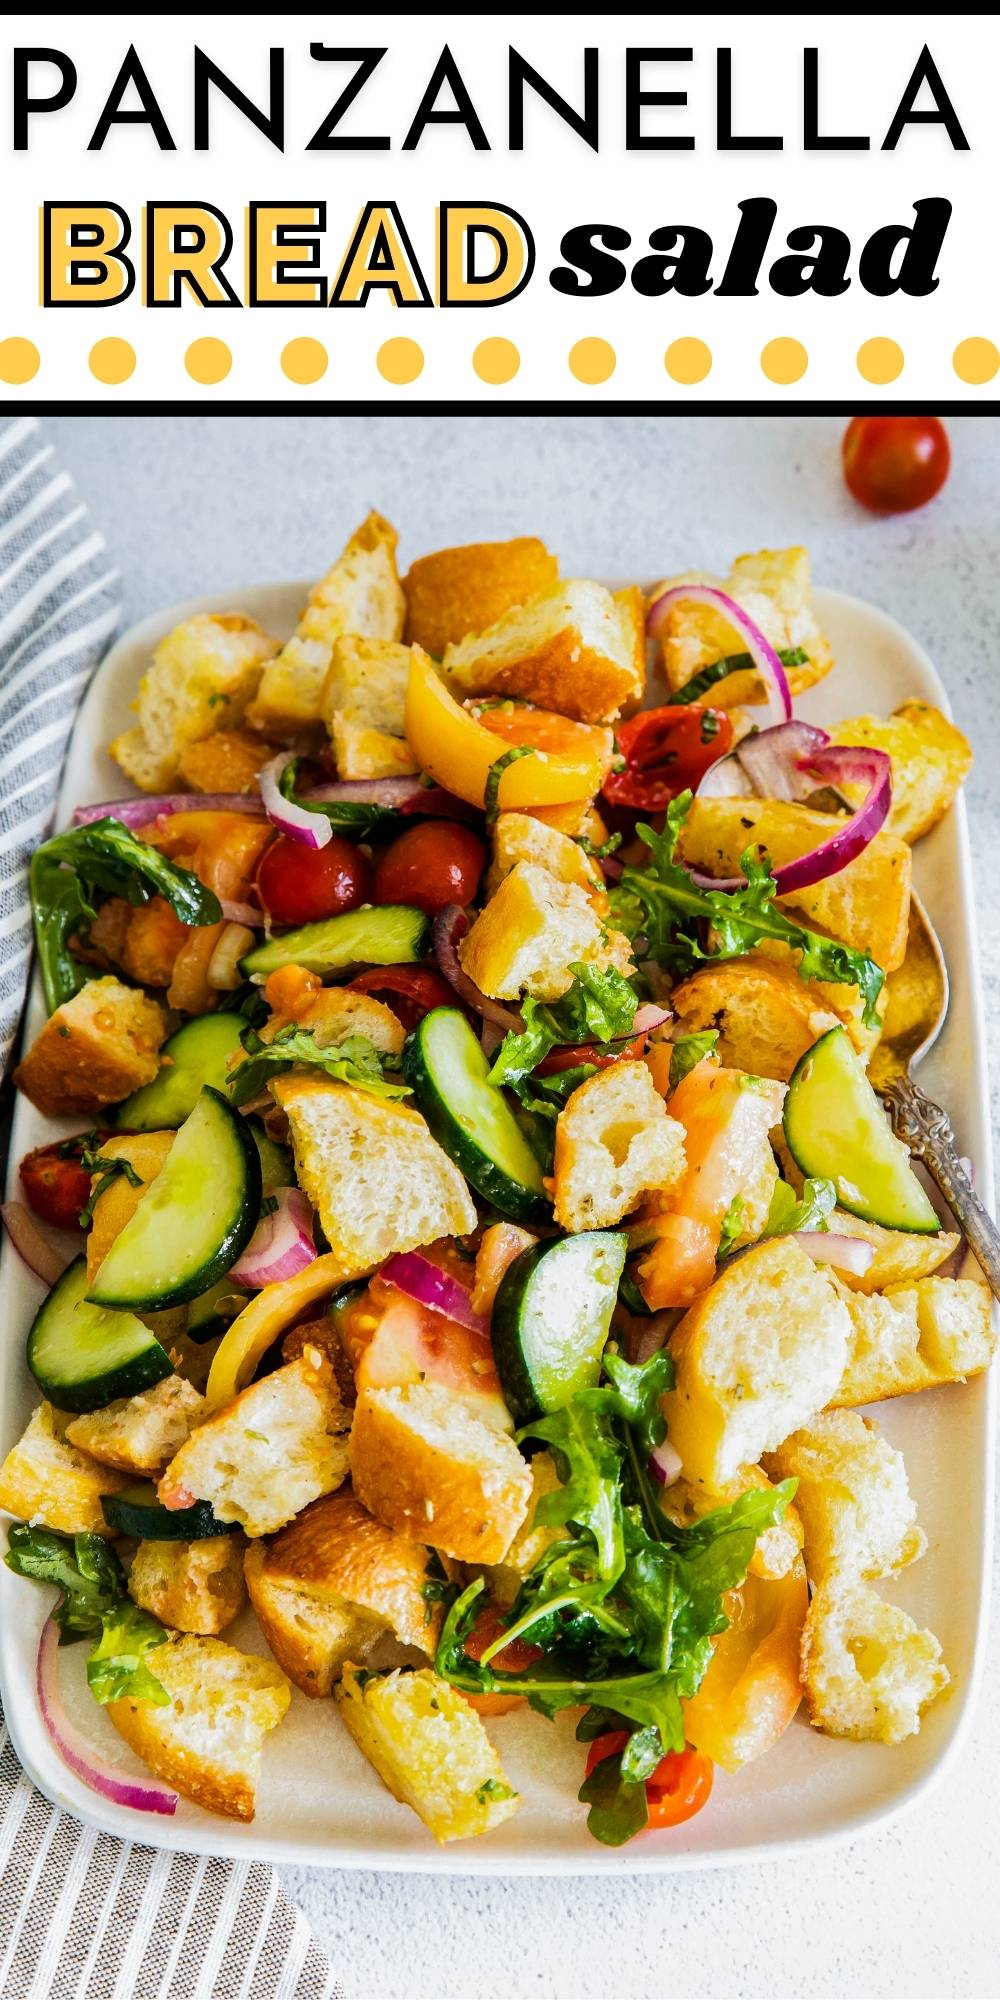 This Panzanella Salad is a bread salad made with ciabatta bread, arugula, cucumber, tomatoes, red onion, basil, capers, and an easy homemade vinaigrette. via @foodfolksandfun